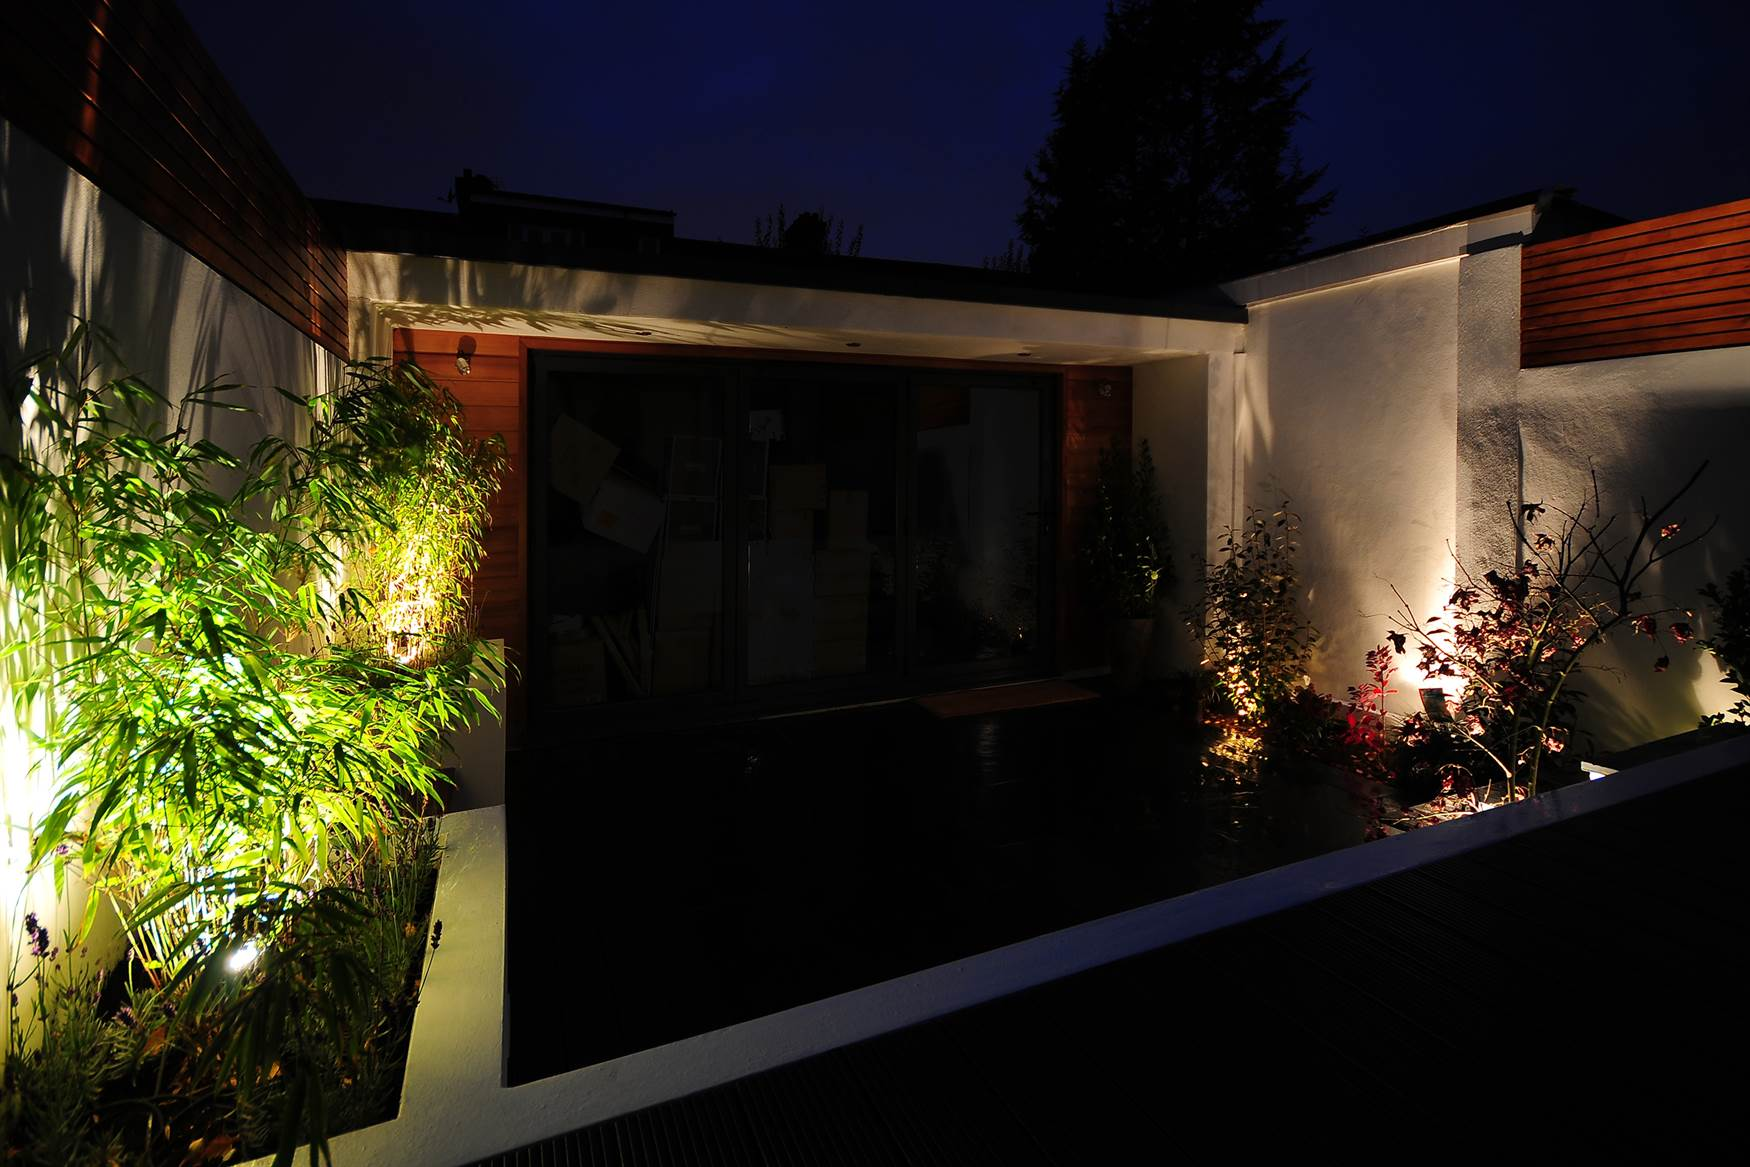 LED tape in flower beds and spotlights